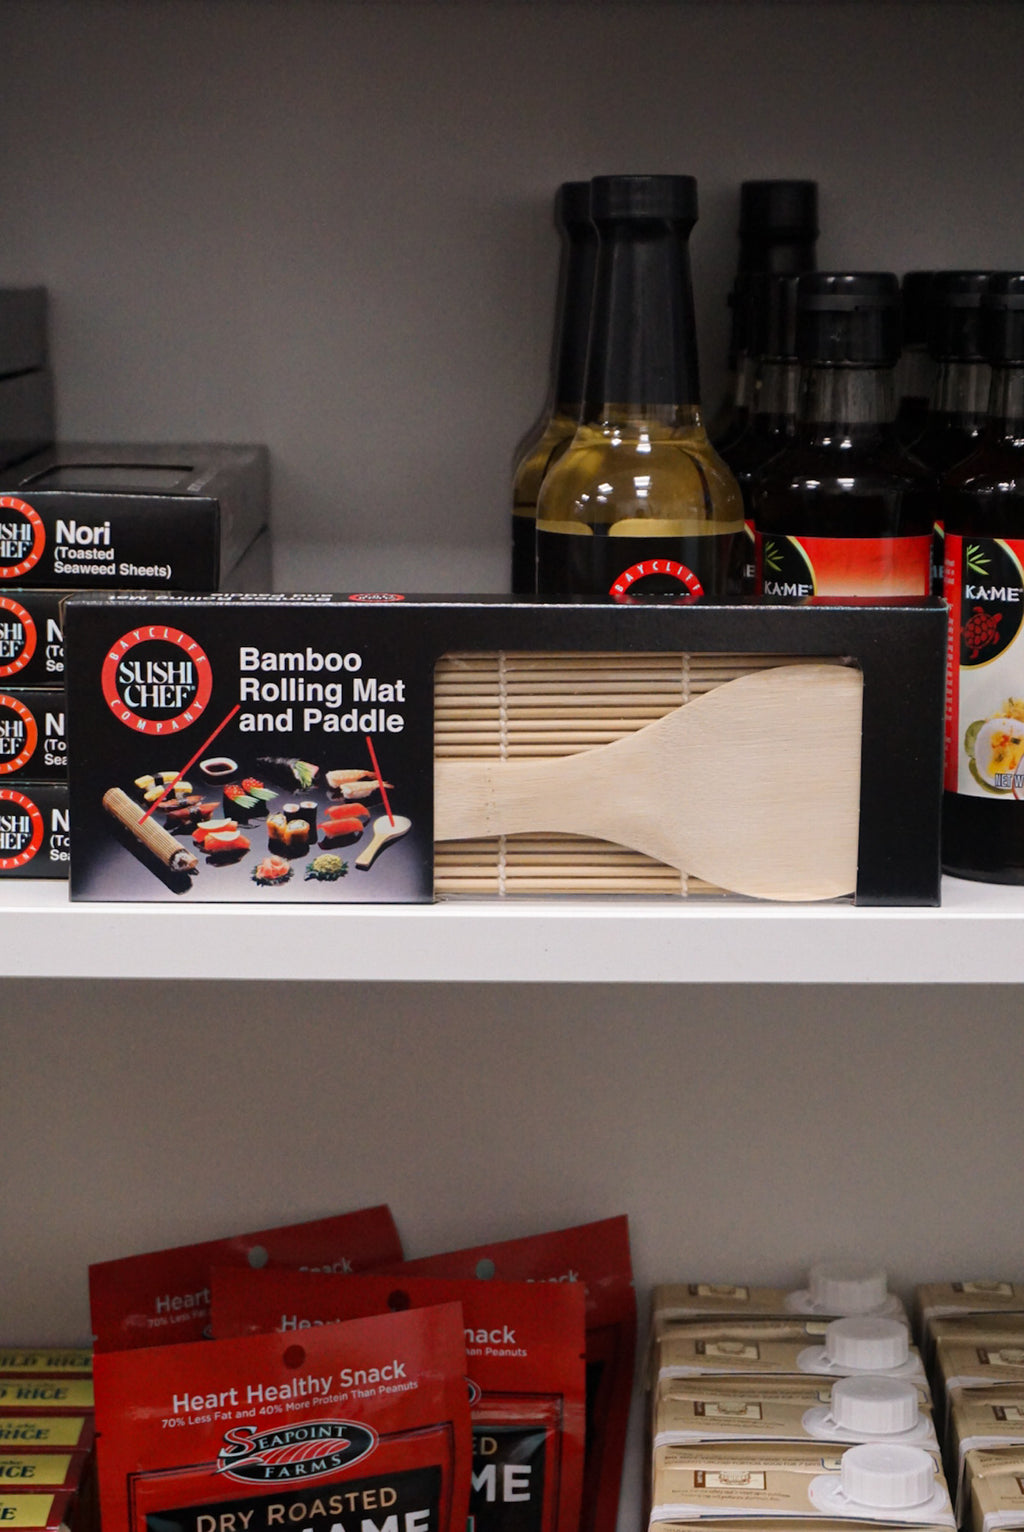 Sushi Chef Bamboo Rolling Mat & Paddle